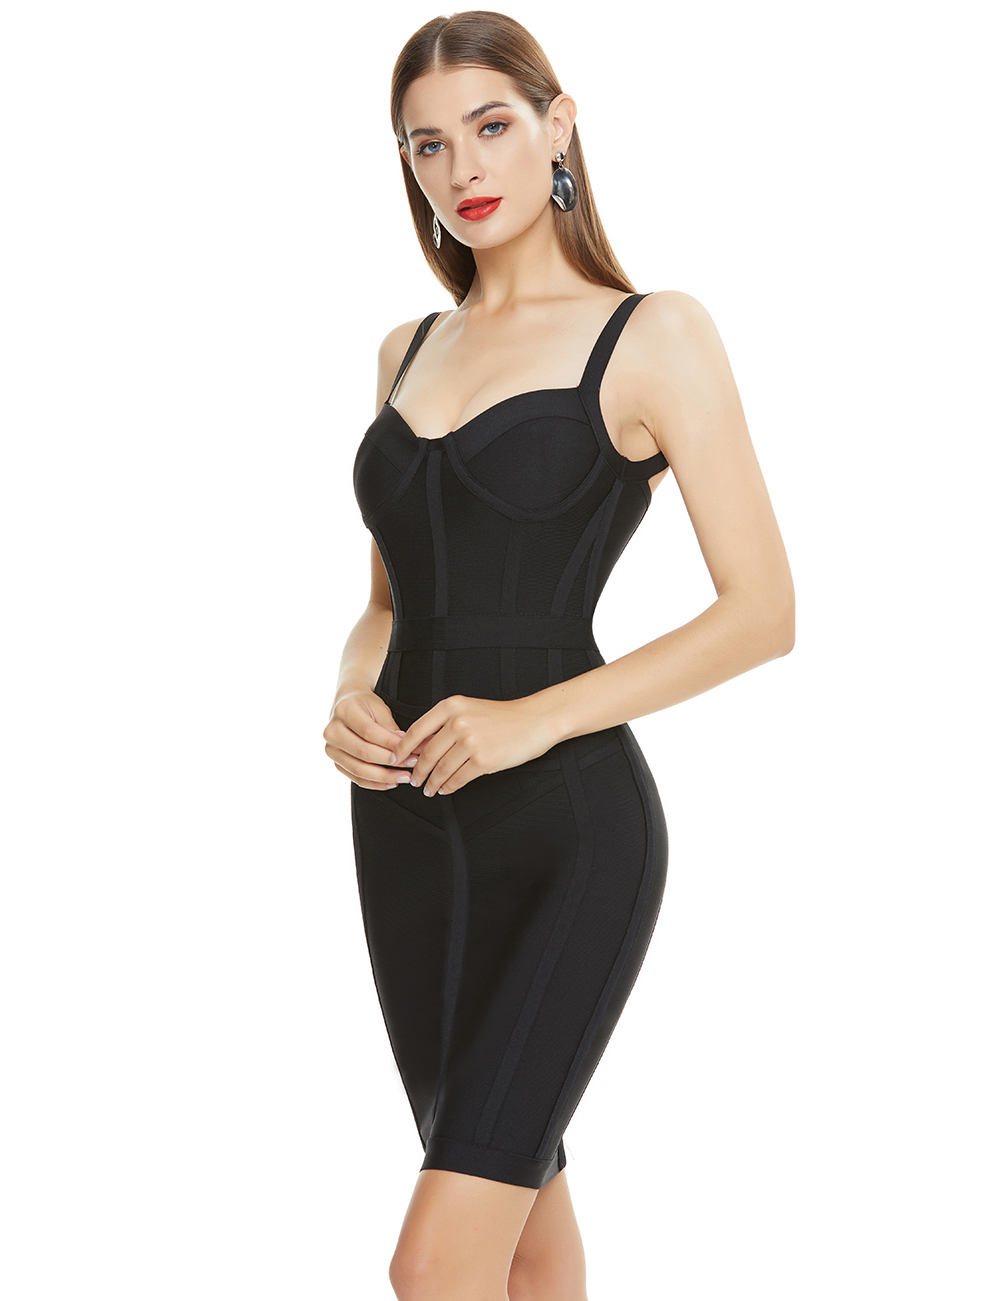 //cdn.affectcloud.com/hexinfashion/upload/imgs/dresses/Bandage_Dresses/VZ191303-BK1/VZ191303-BK1-201911225dd75b3951256.jpg